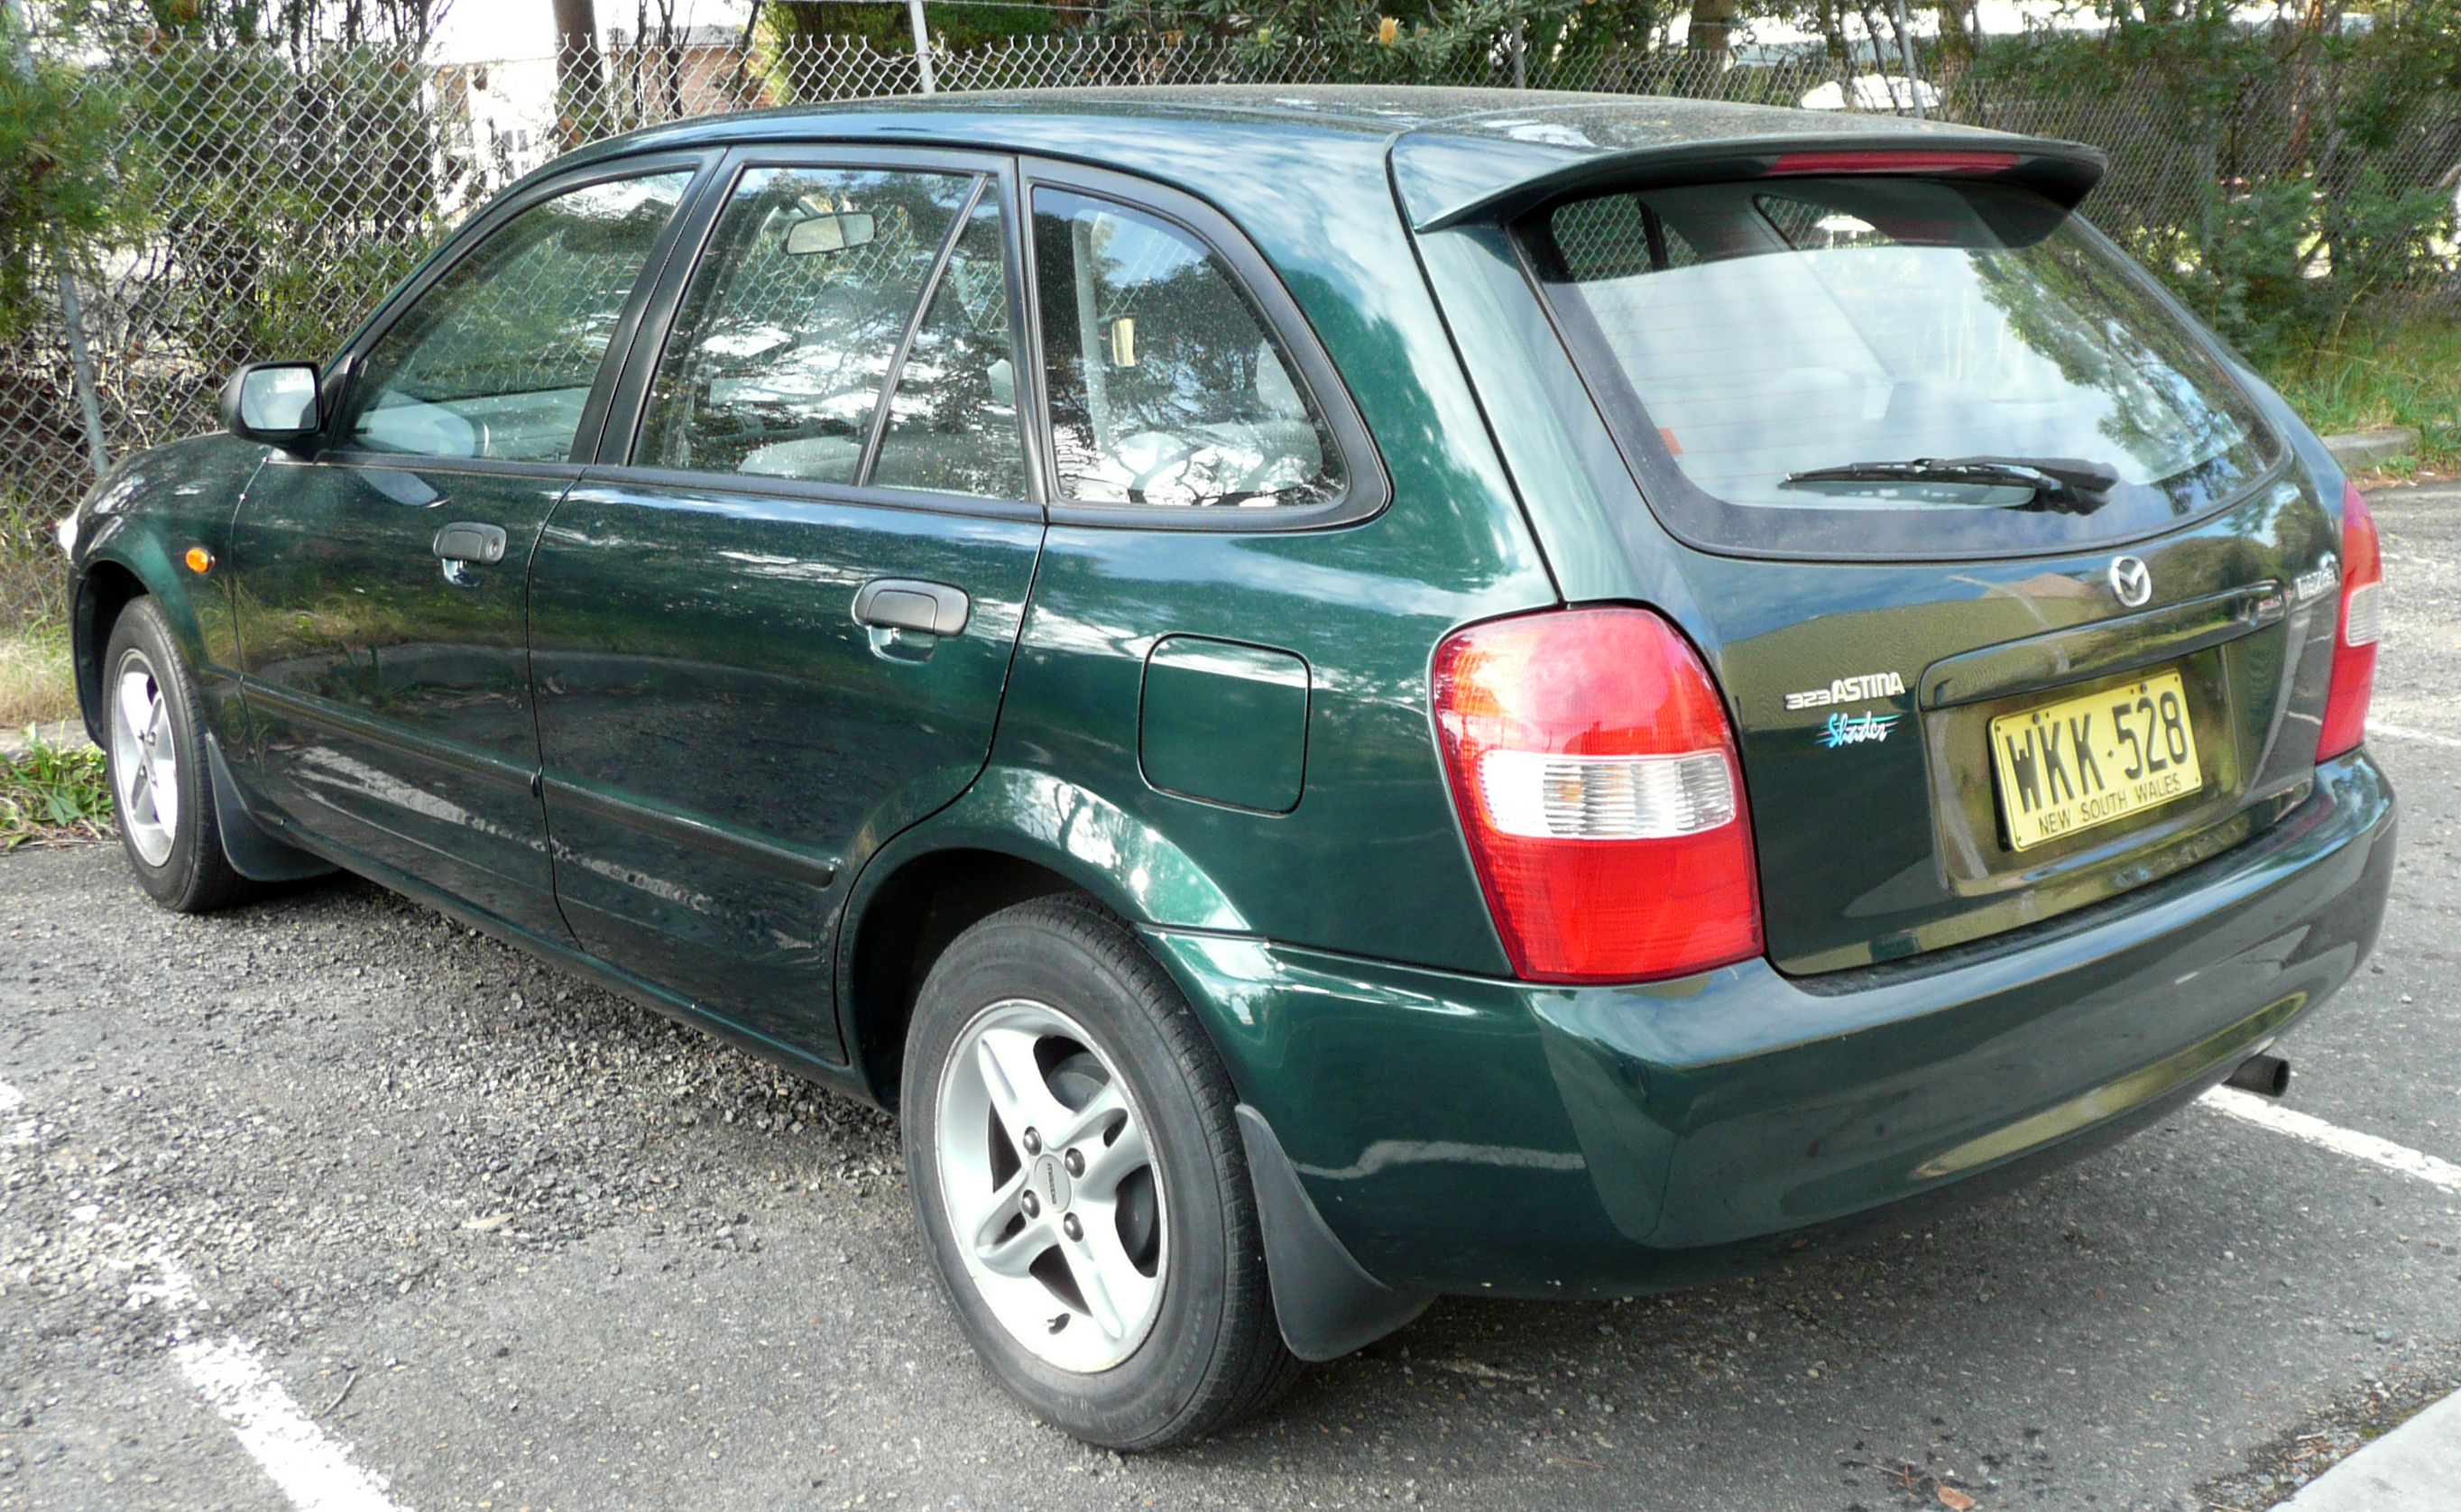 https://upload.wikimedia.org/wikipedia/commons/0/0c/1999-2000_Mazda_323_%28BJ%29_Shades_Astina_5-door_hatchback_03.jpg